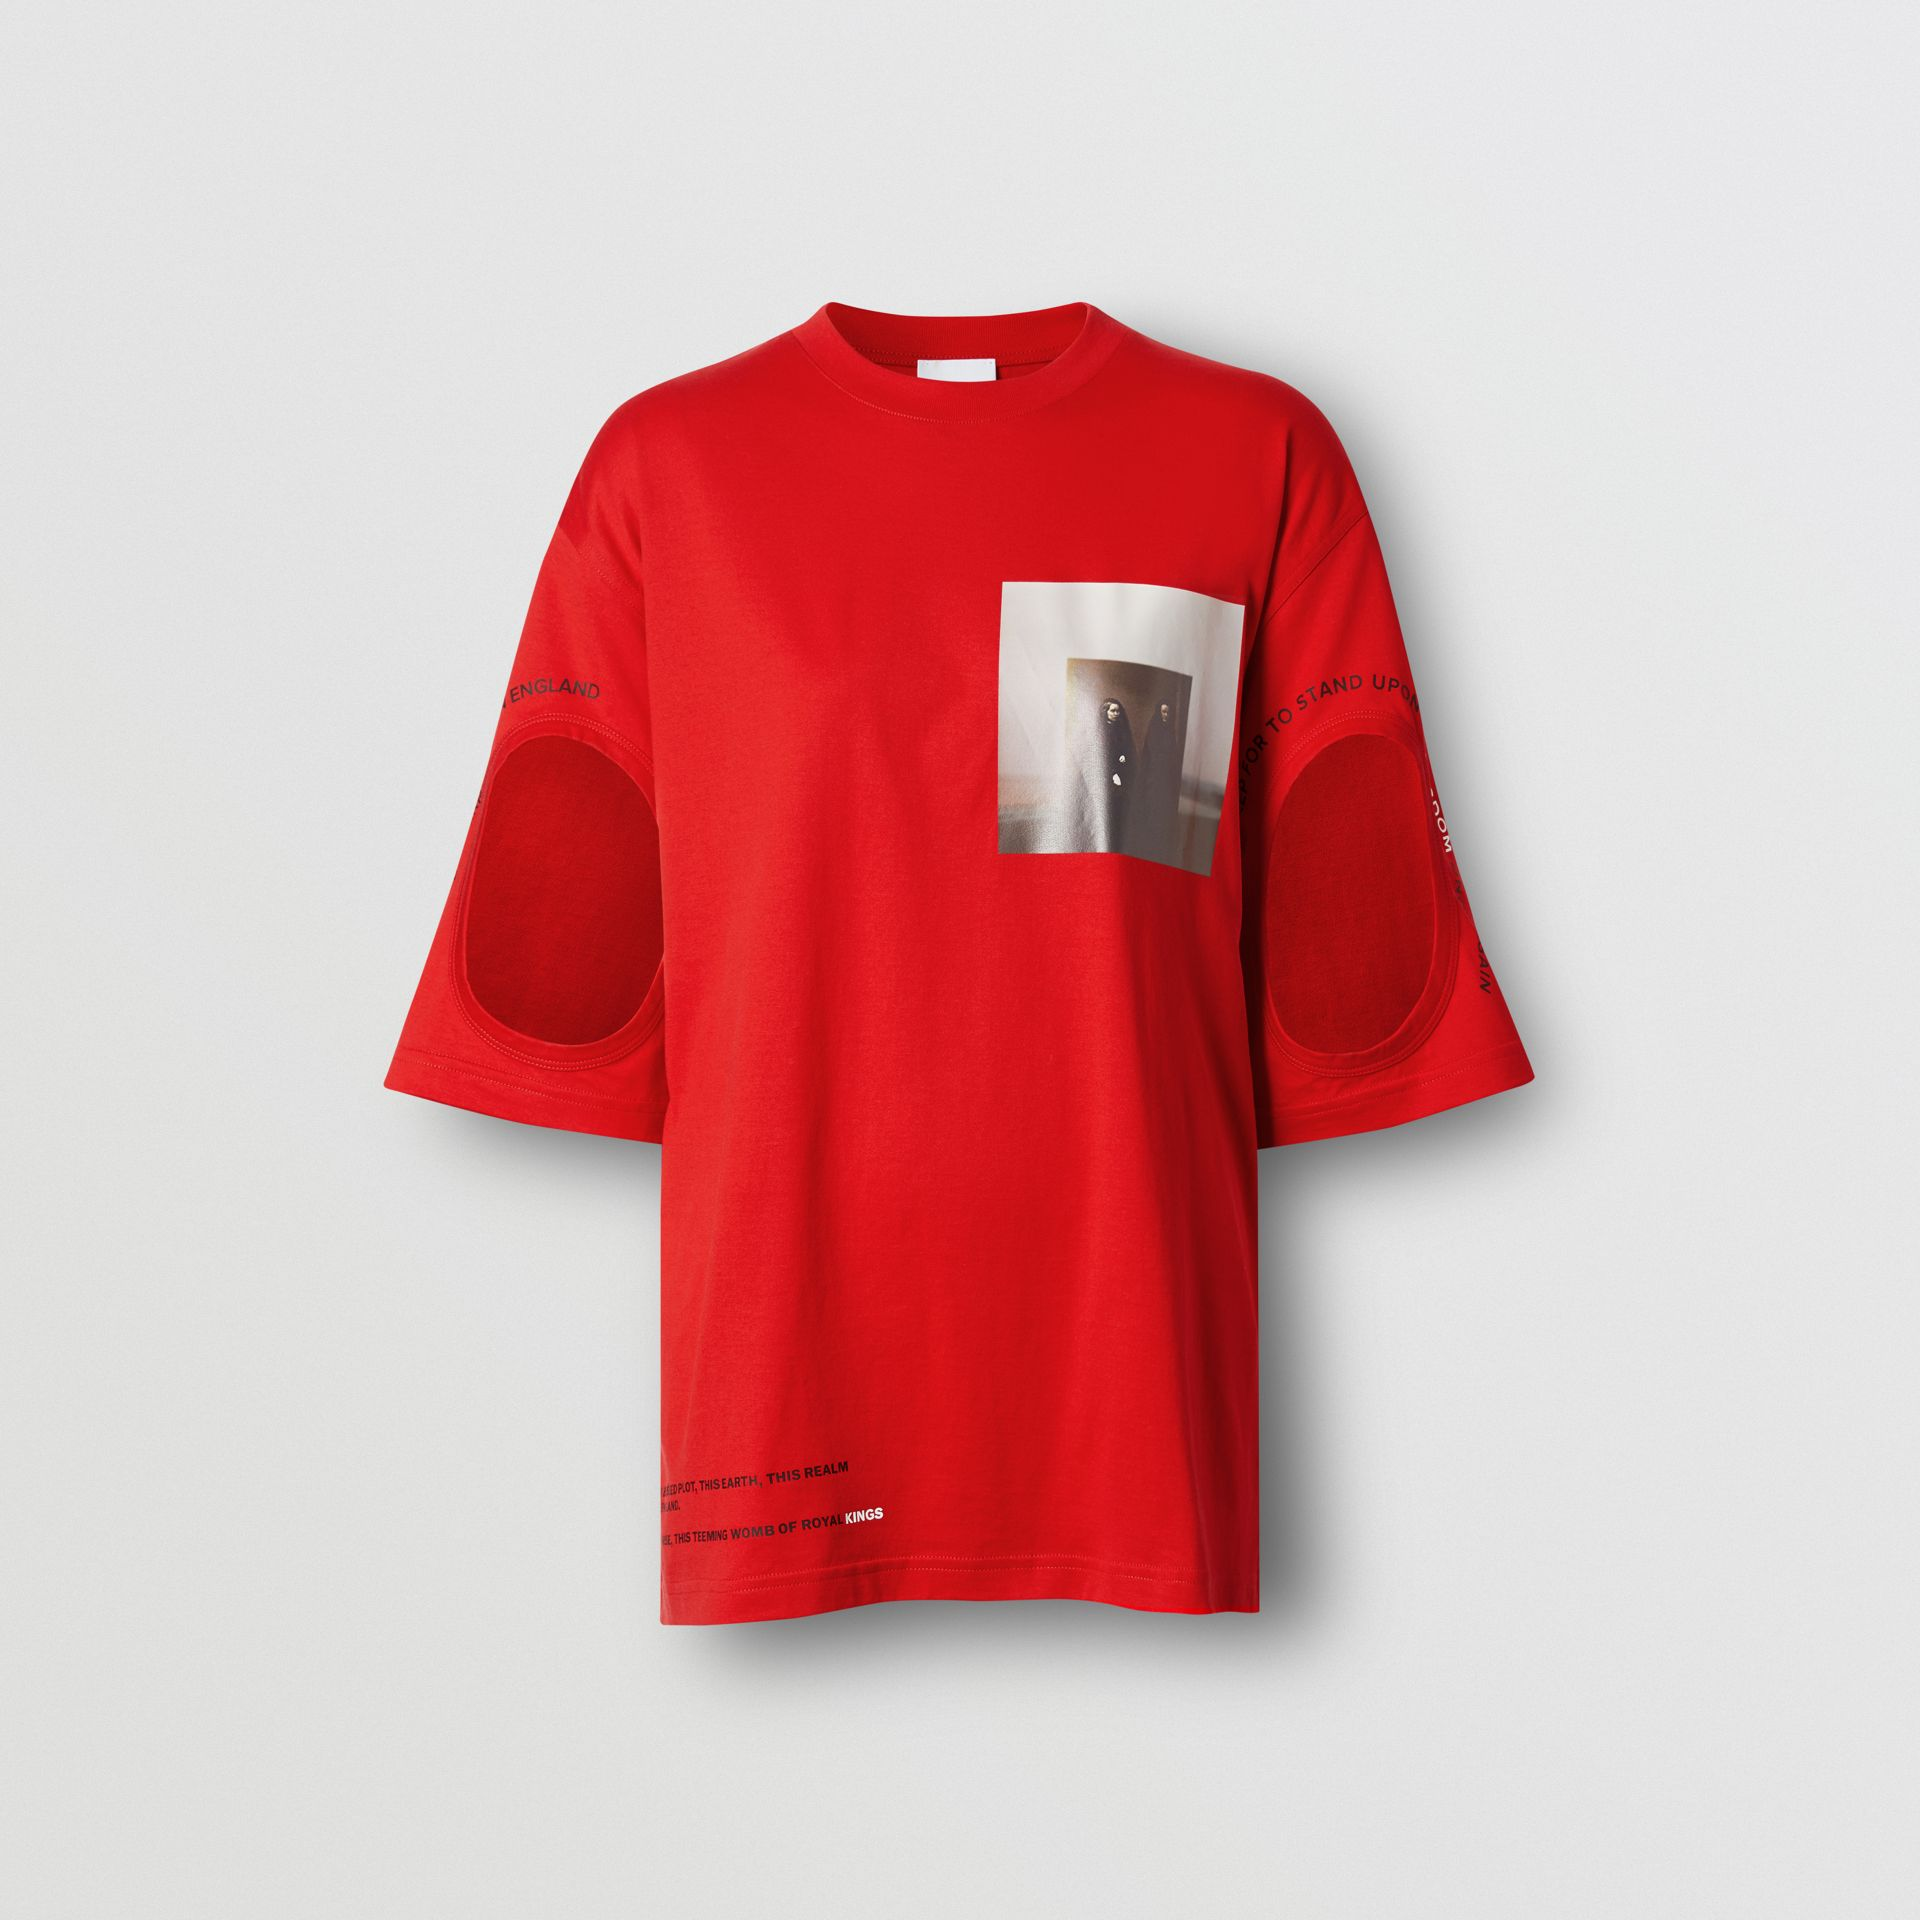 Cut-out Detail Montage Print Oversized T-shirt in Bright Red - Women | Burberry United Kingdom - gallery image 3